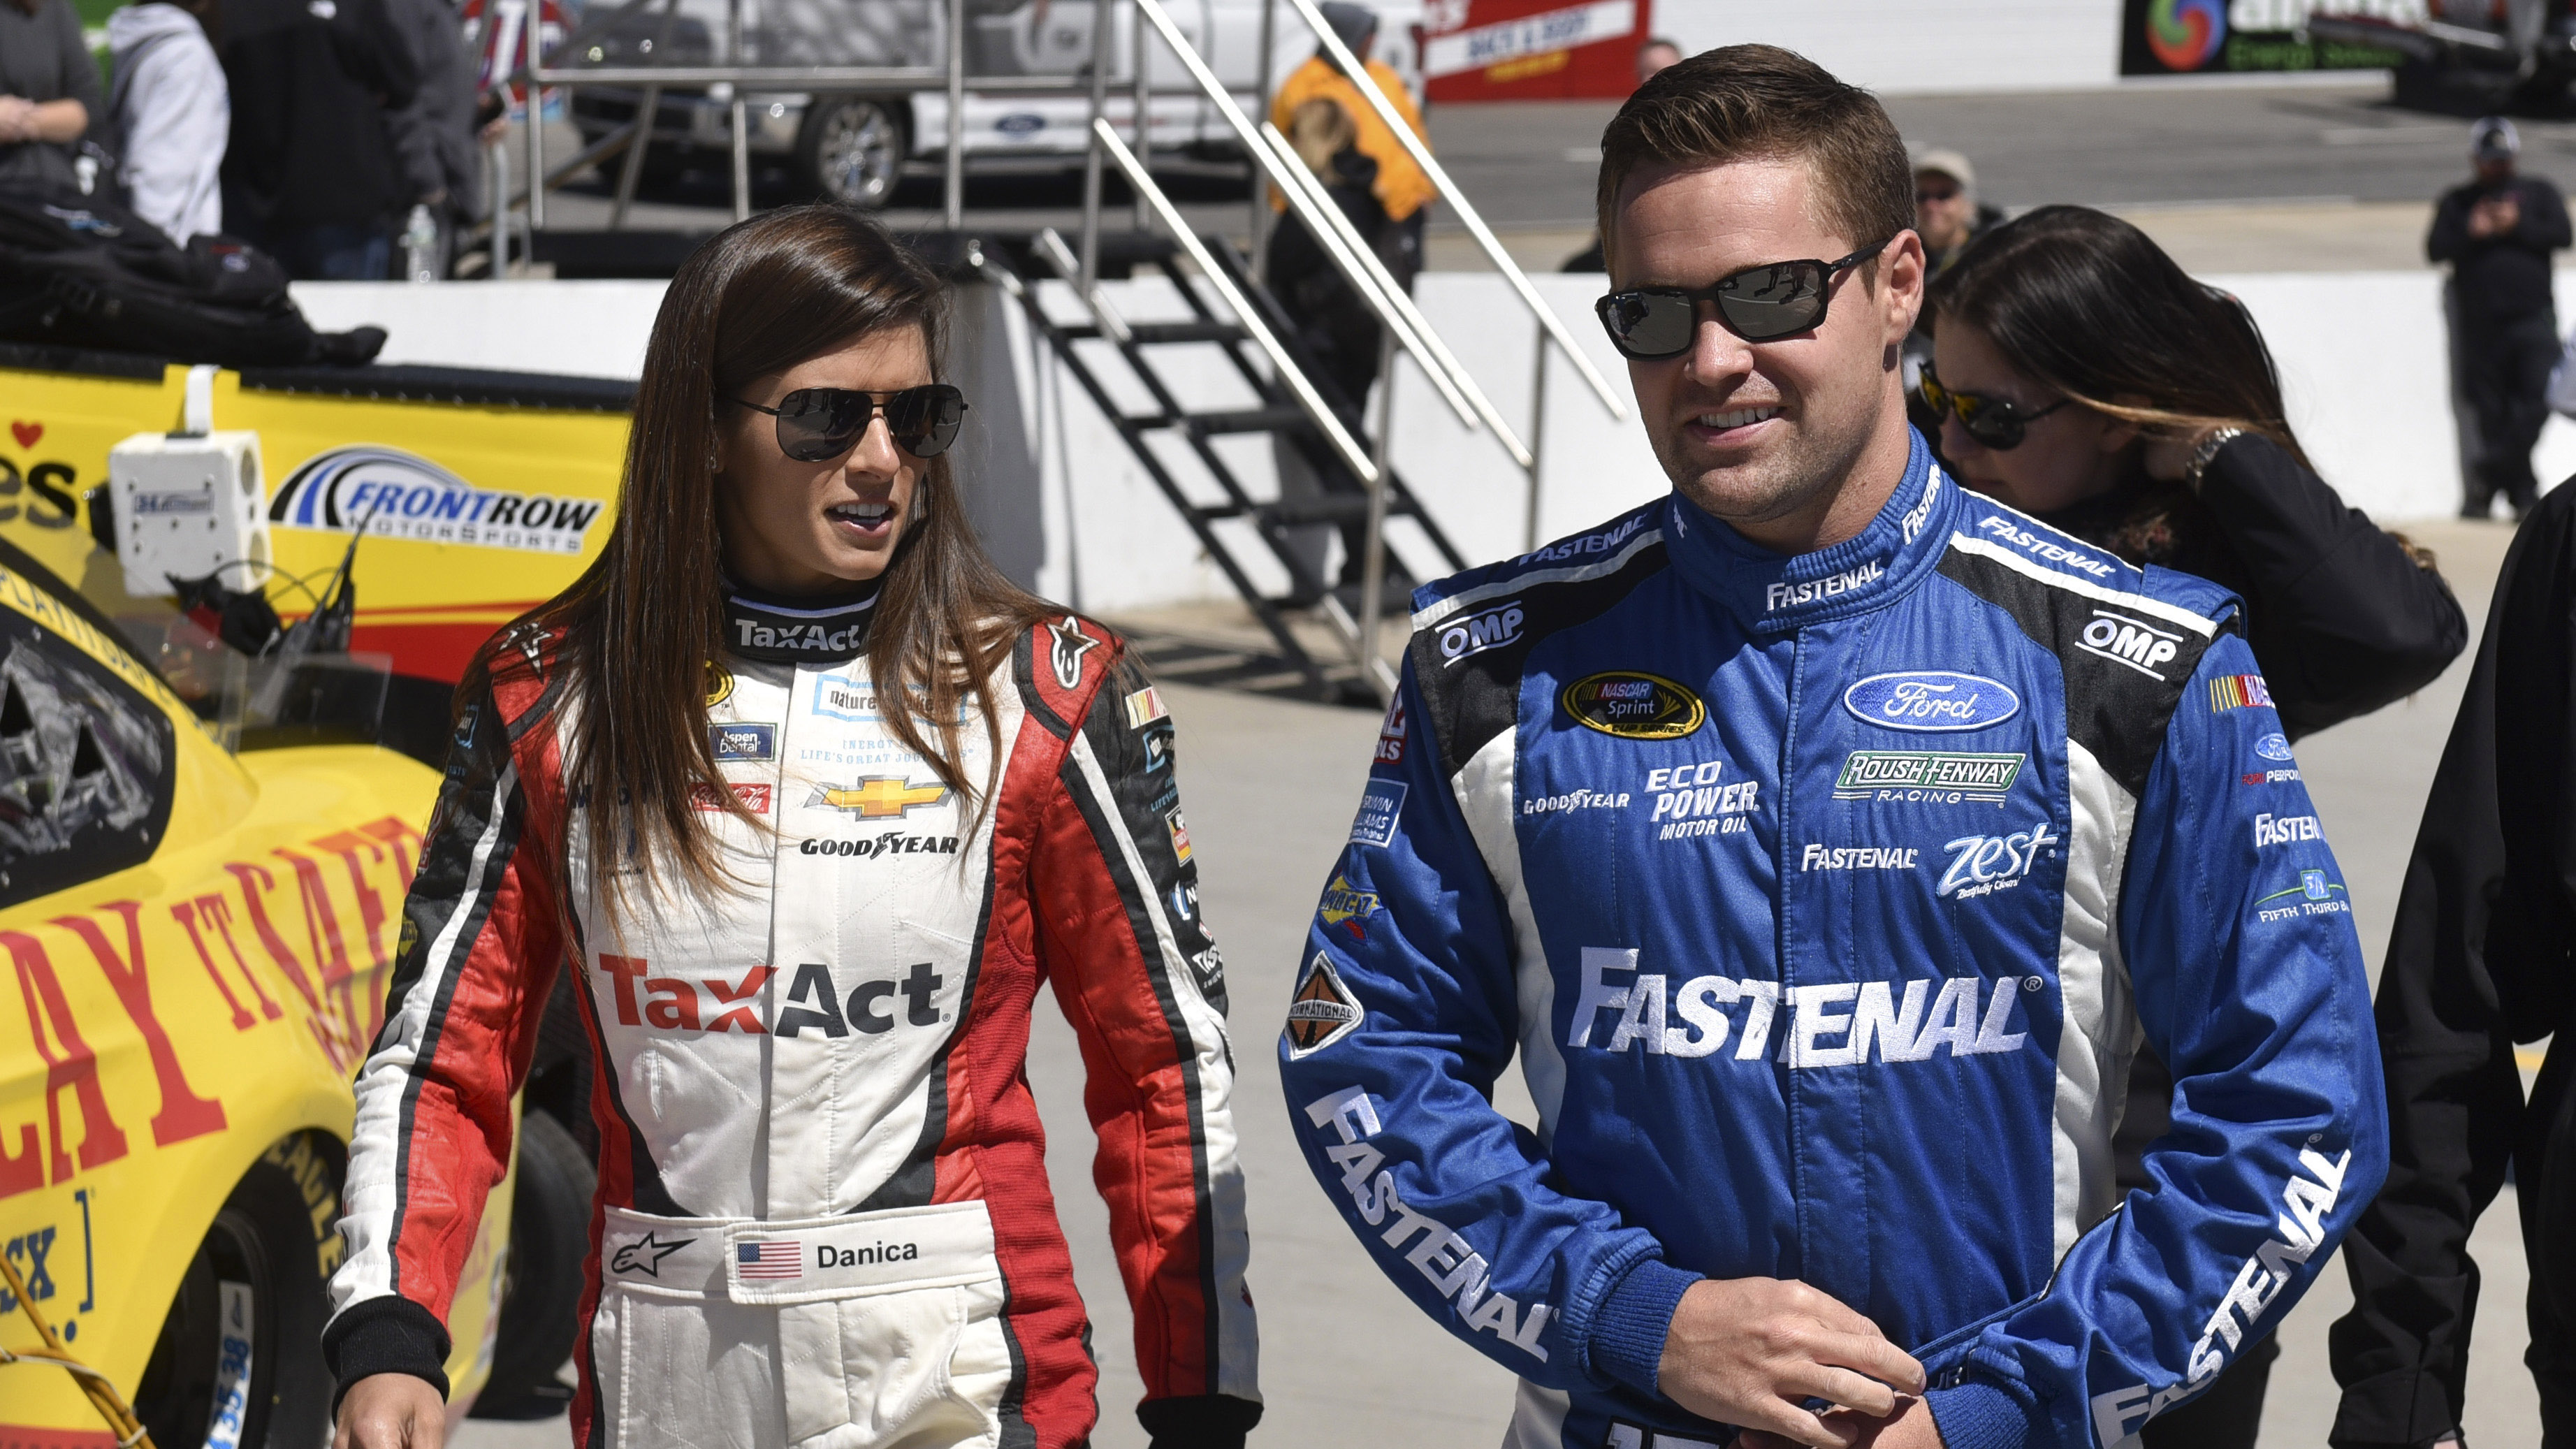 Apr 2, 2016; Martinsville, VA, USA; NASCAR Sprint Cup Series driver Danica Patrick (10) and driver Ricky Stenhouse Jr. (17) arrive prior the Alpha Energy Solutions 250 at Martinsville Speedway. Mandatory Credit: Michael Shroyer-USA TODAY Sports